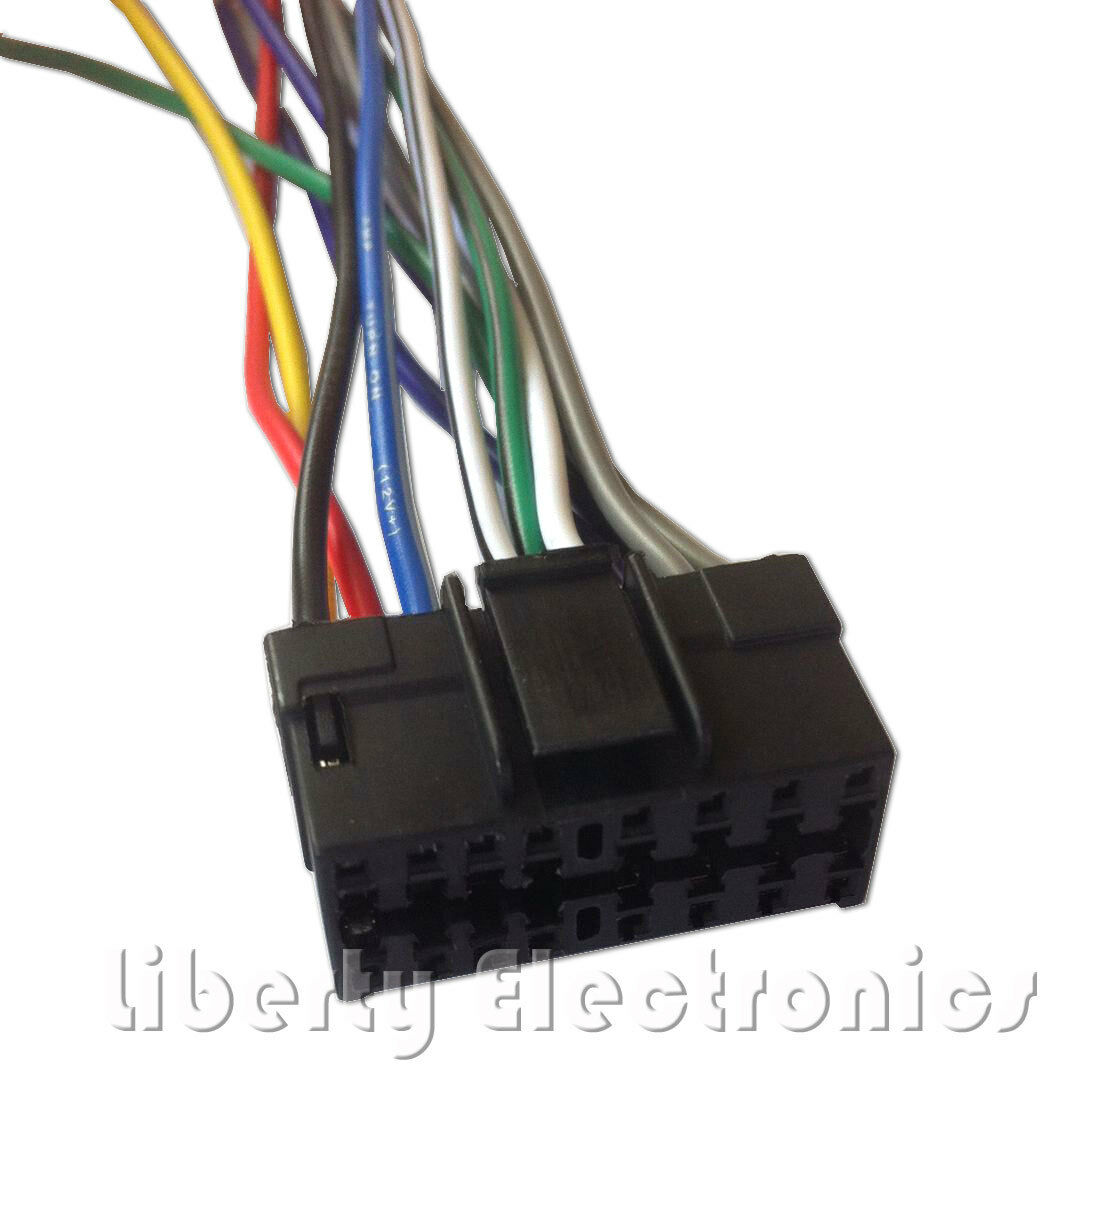 NEW WIRE HARNESS for PIONEER DEH P20 DEH P200?resize=665%2C724&ssl=1 diagrams 413300 pioneer deh p2000 wiring diagram pioneer deh pioneer deh-p20 wiring diagram at mifinder.co